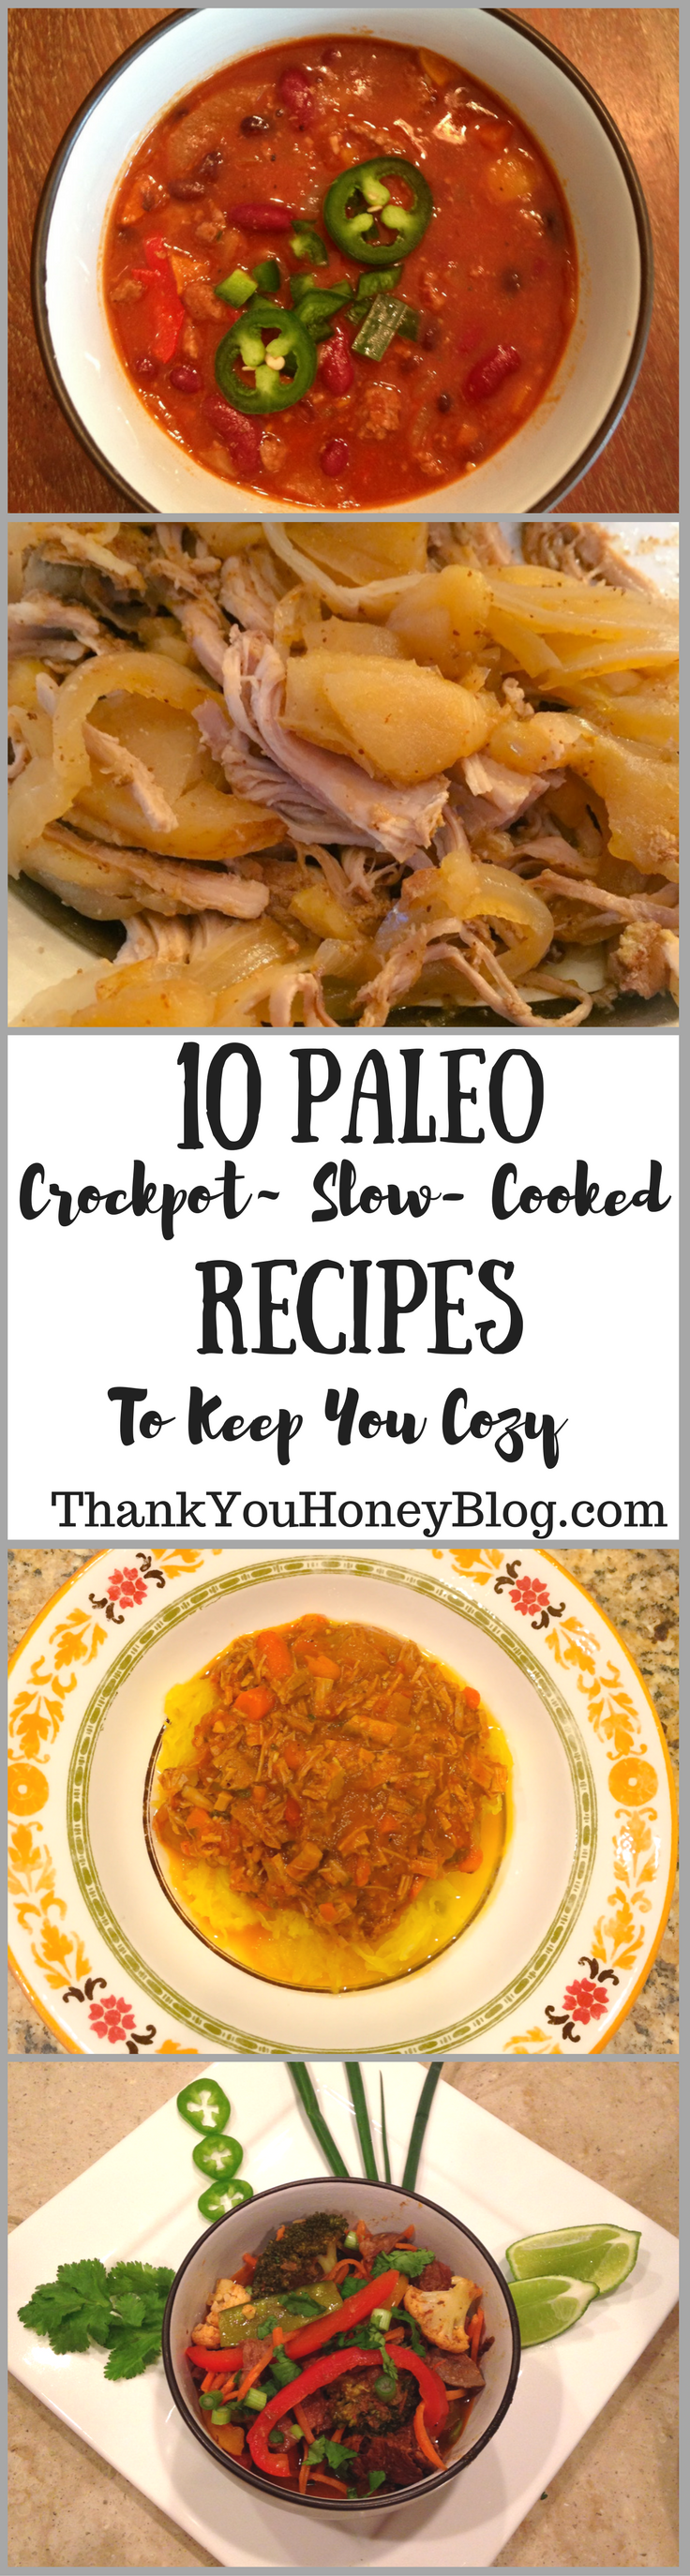 10 Paleo Crockpot~ Slow- Cooked Recipes